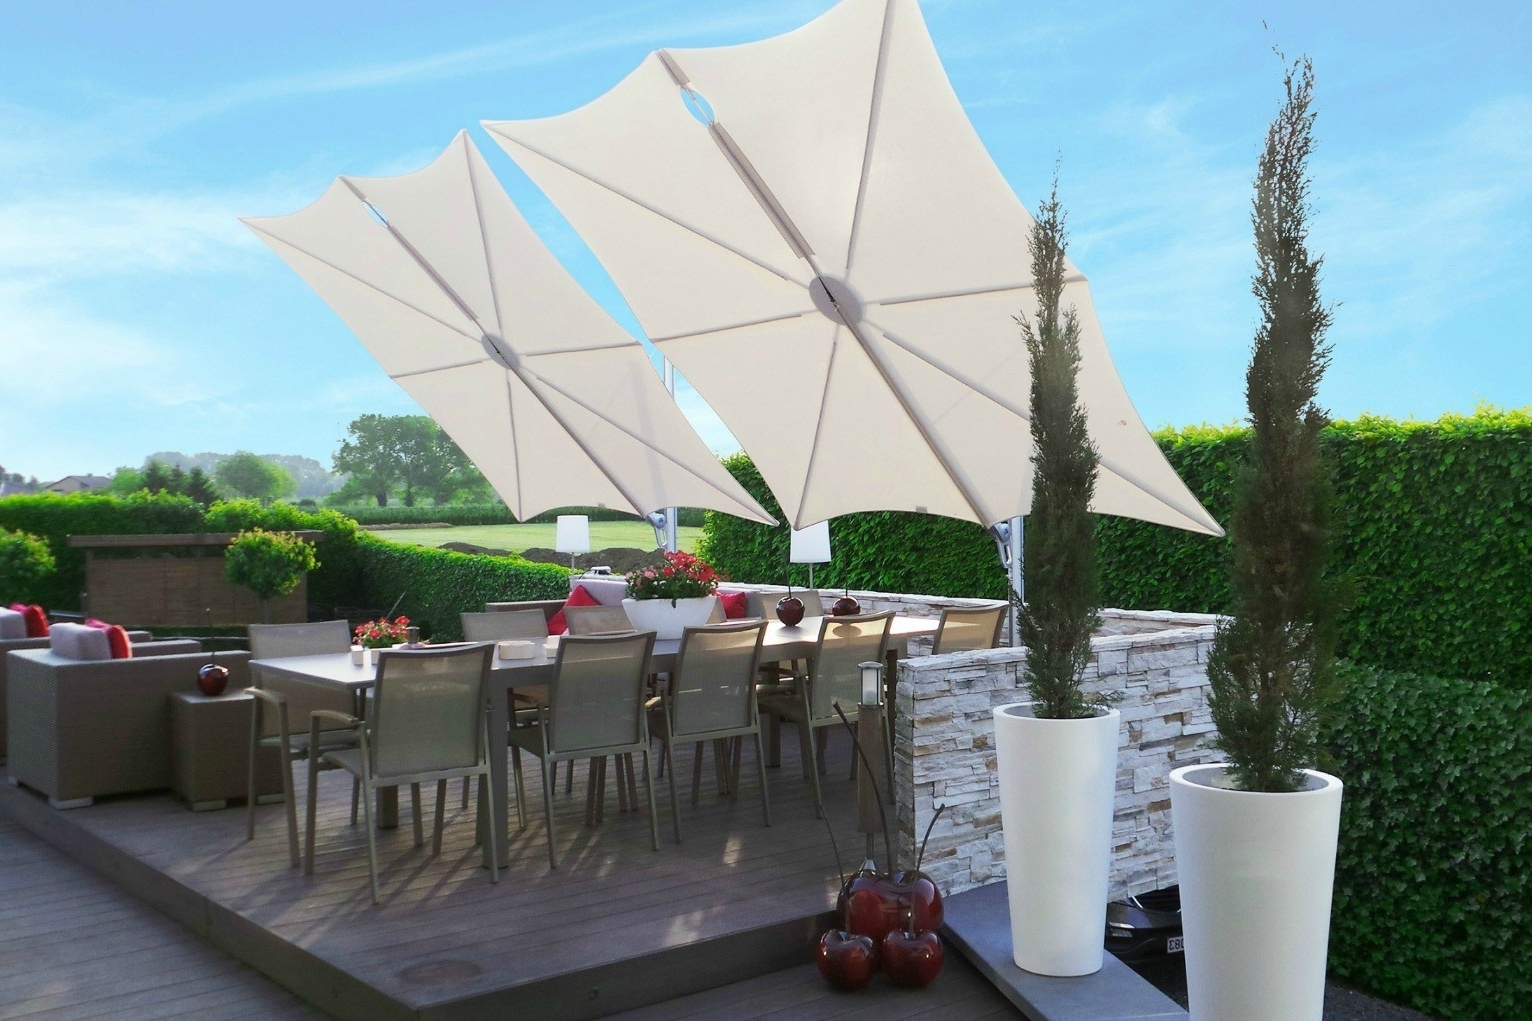 Widely Used Lovely High Wind Resistant Patio Umbrella F48x About Remodel Rustic Throughout Patio Umbrellas For High Wind Areas (View 5 of 20)